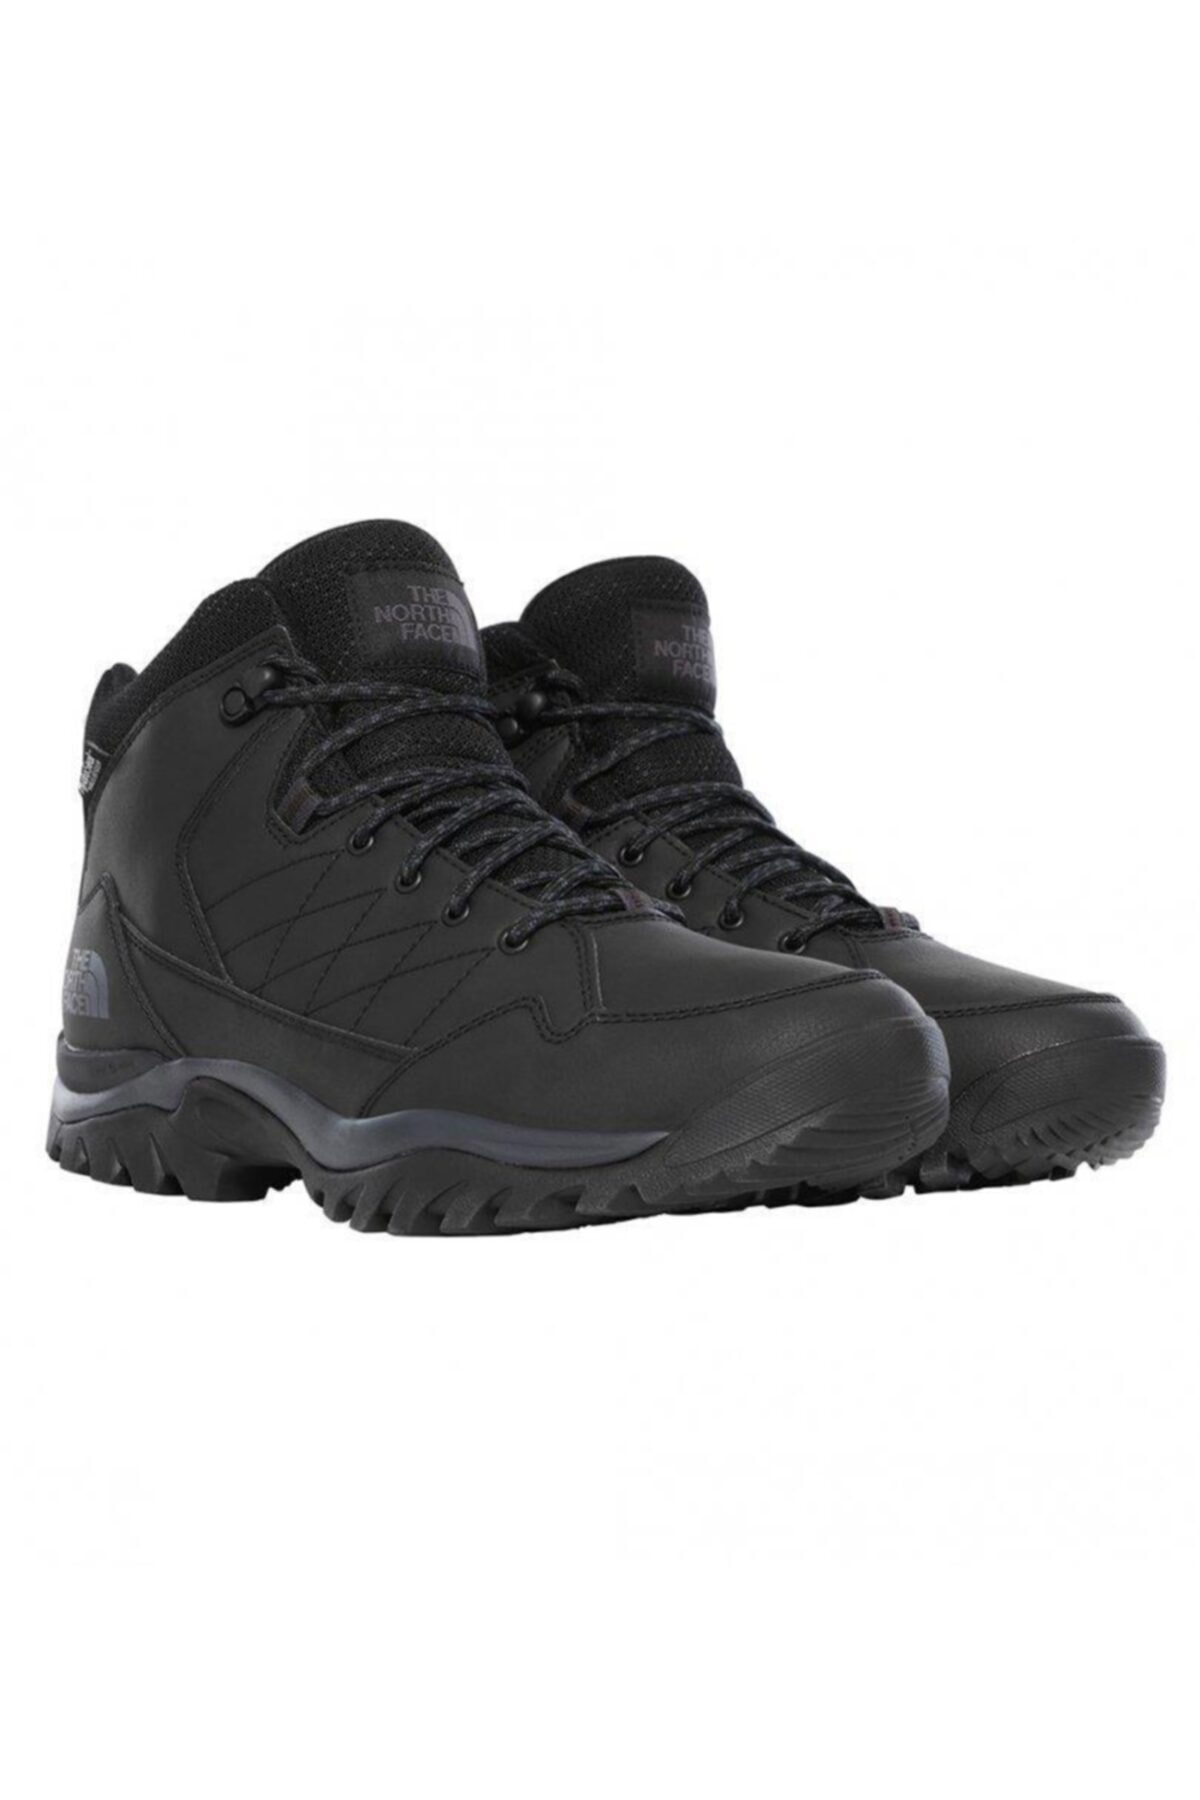 THE NORTH FACE Storm Strike 2 Wp Erkek Bot - T93rrqca0 2